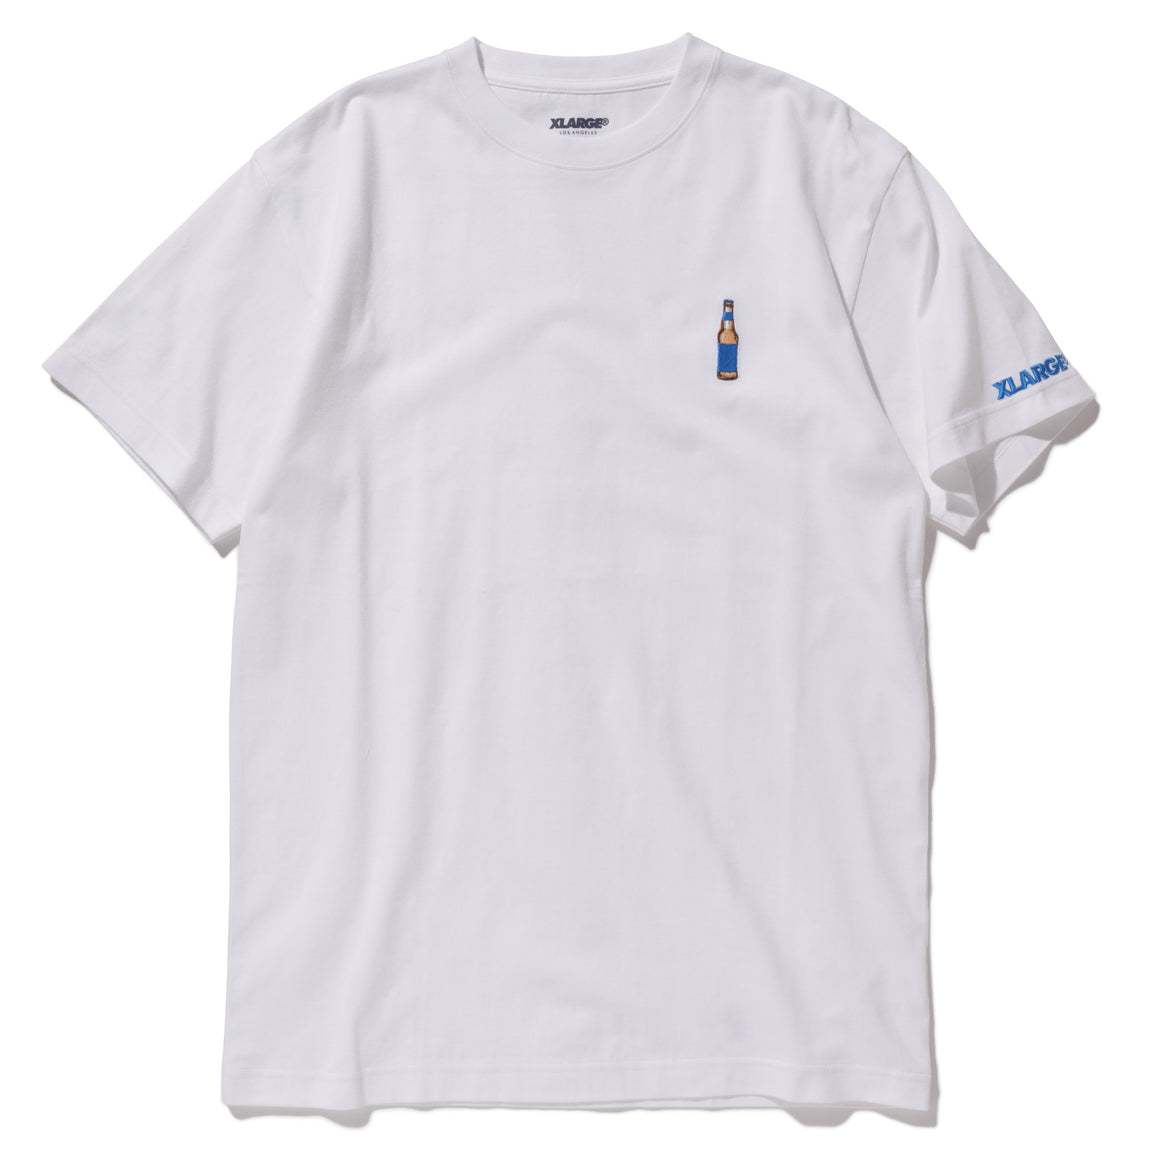 BOTTLE EMBROIDERY SS TEE